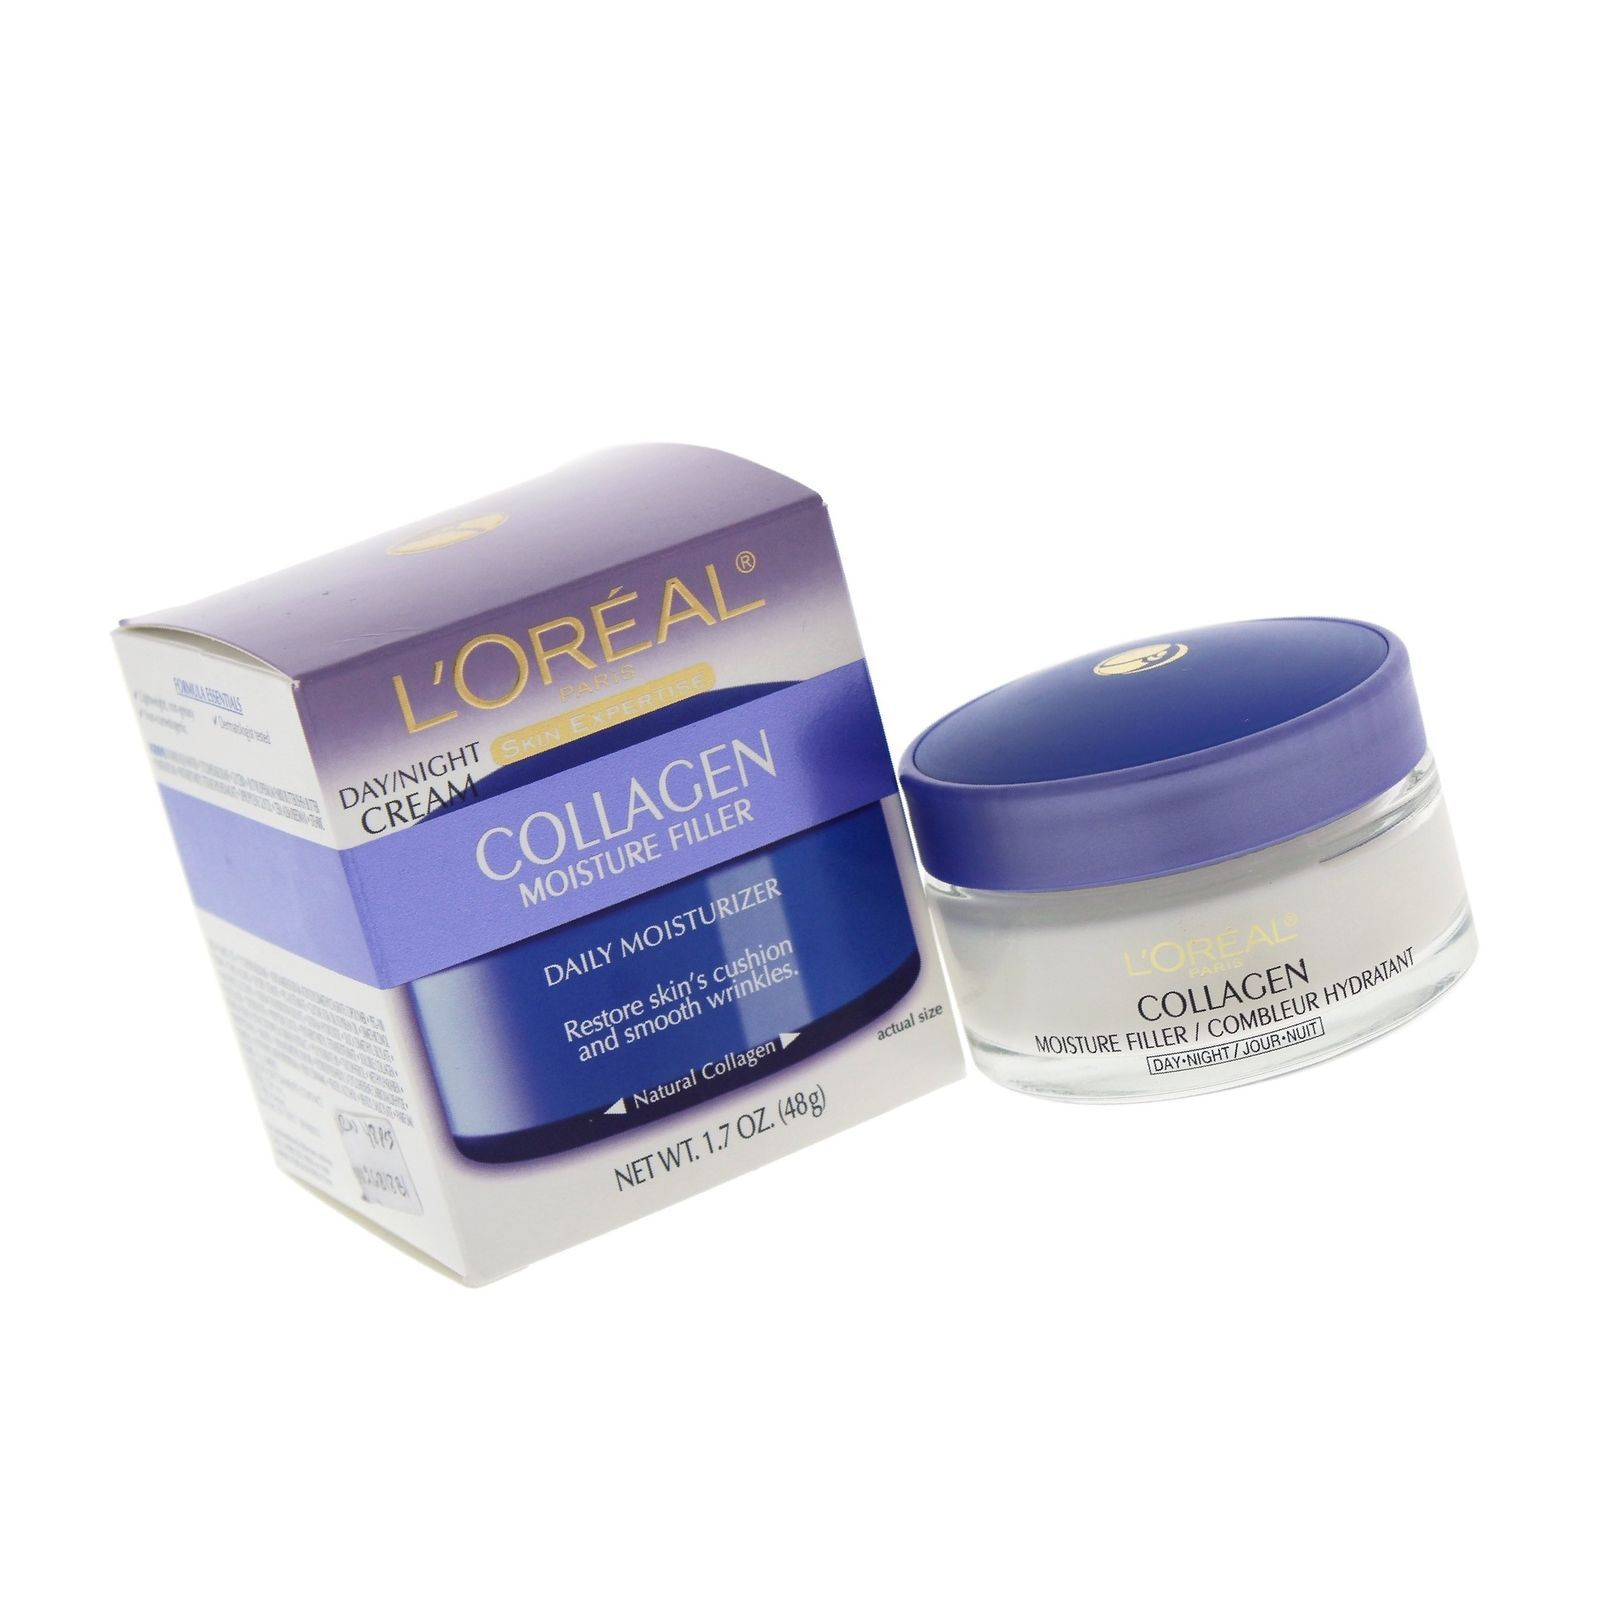 L'Oral Paris Collagen Moisture Filler Facial Day Night Cream, 1.7 oz. 1 Count